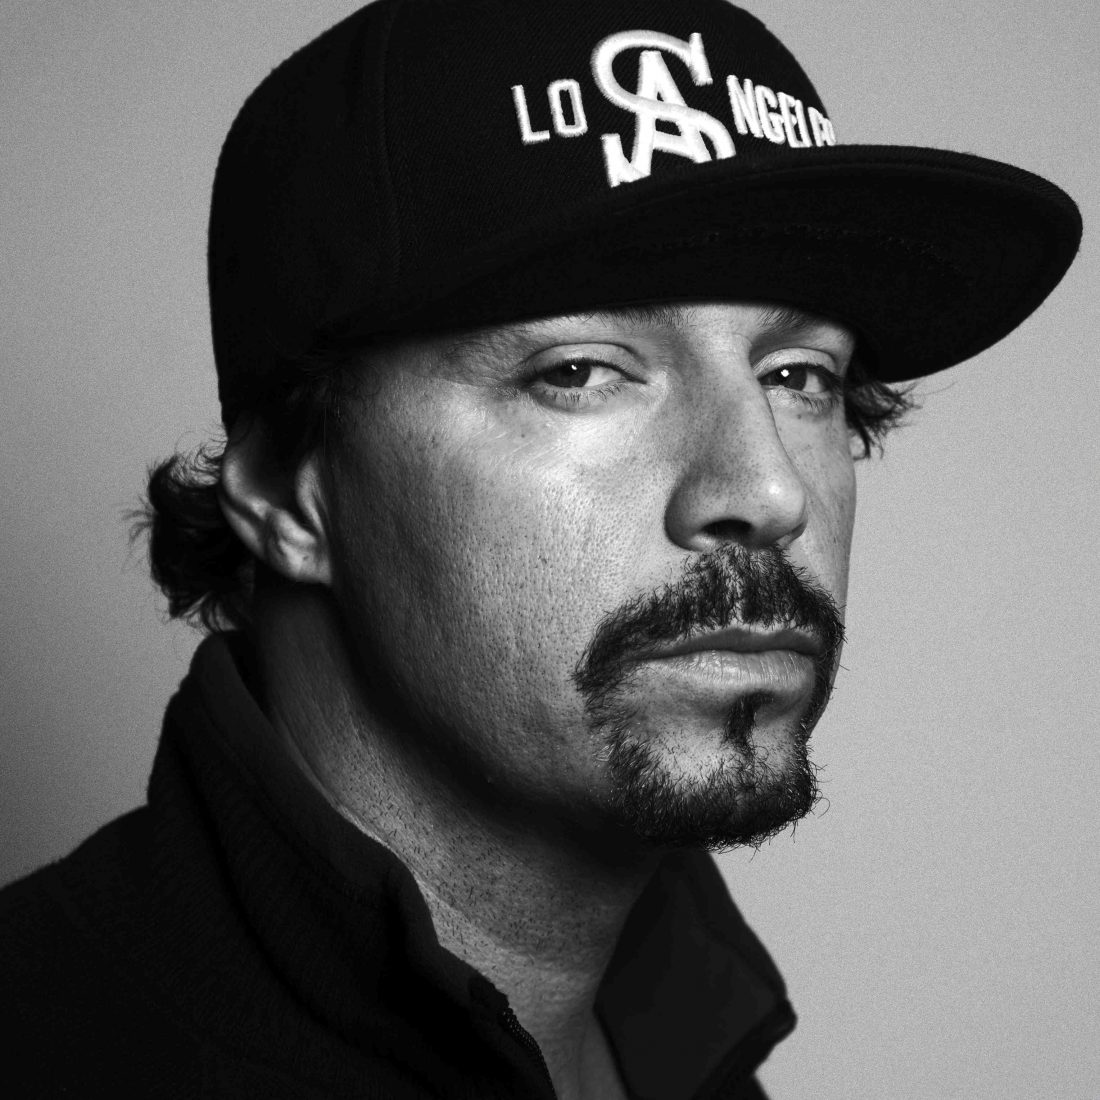 Find out which record is @cypresshill member #DJMuggs' favourite... https://bit.ly/2sBR8Wh pic.twitter.com/5pw9GKs7N2